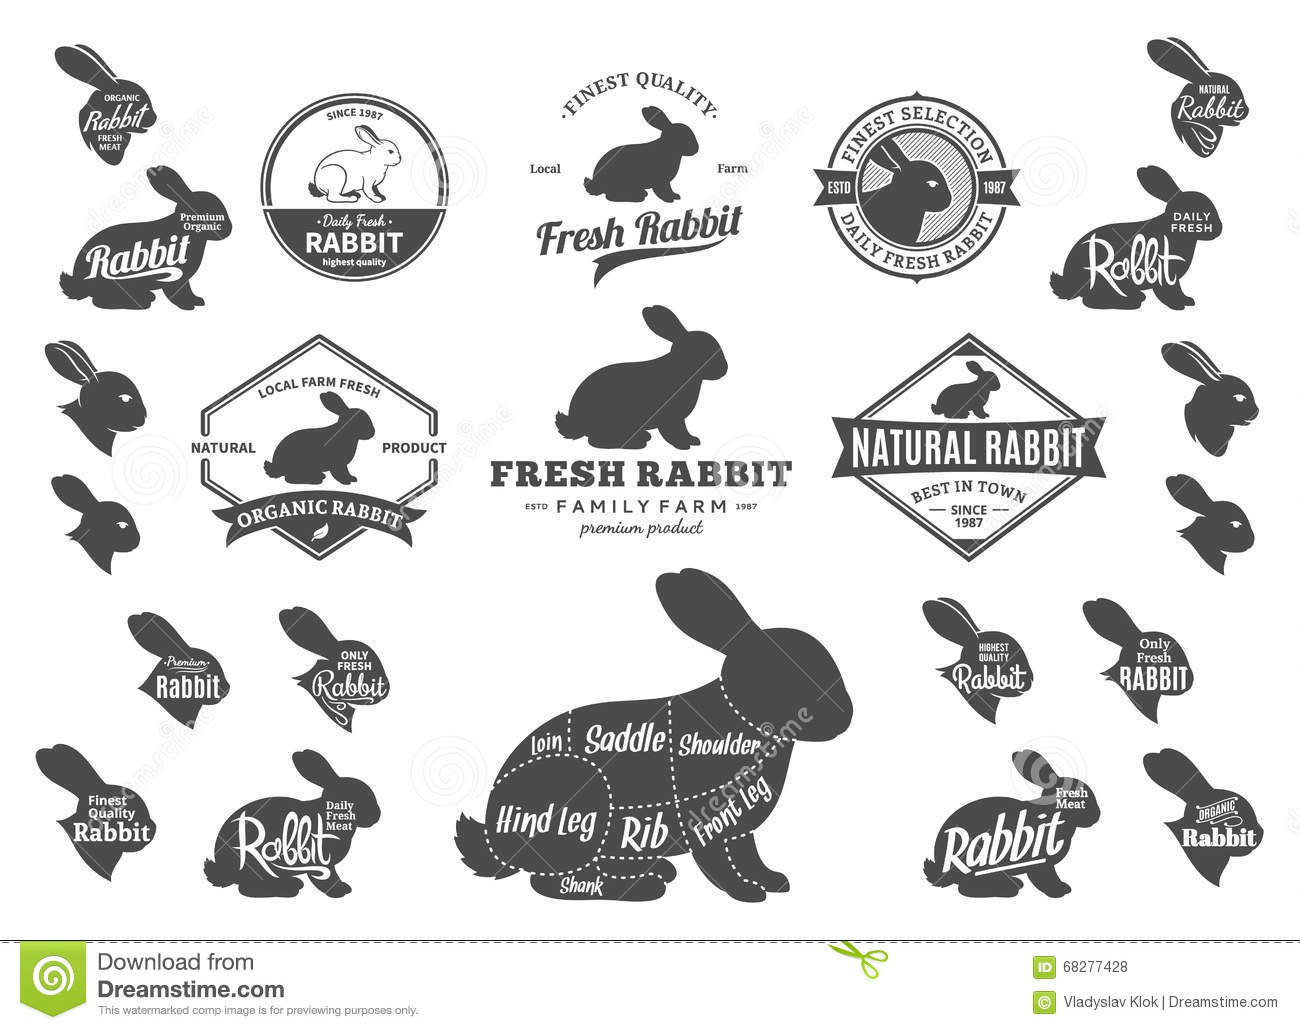 The Rabbit Diagram Cartoon Vector